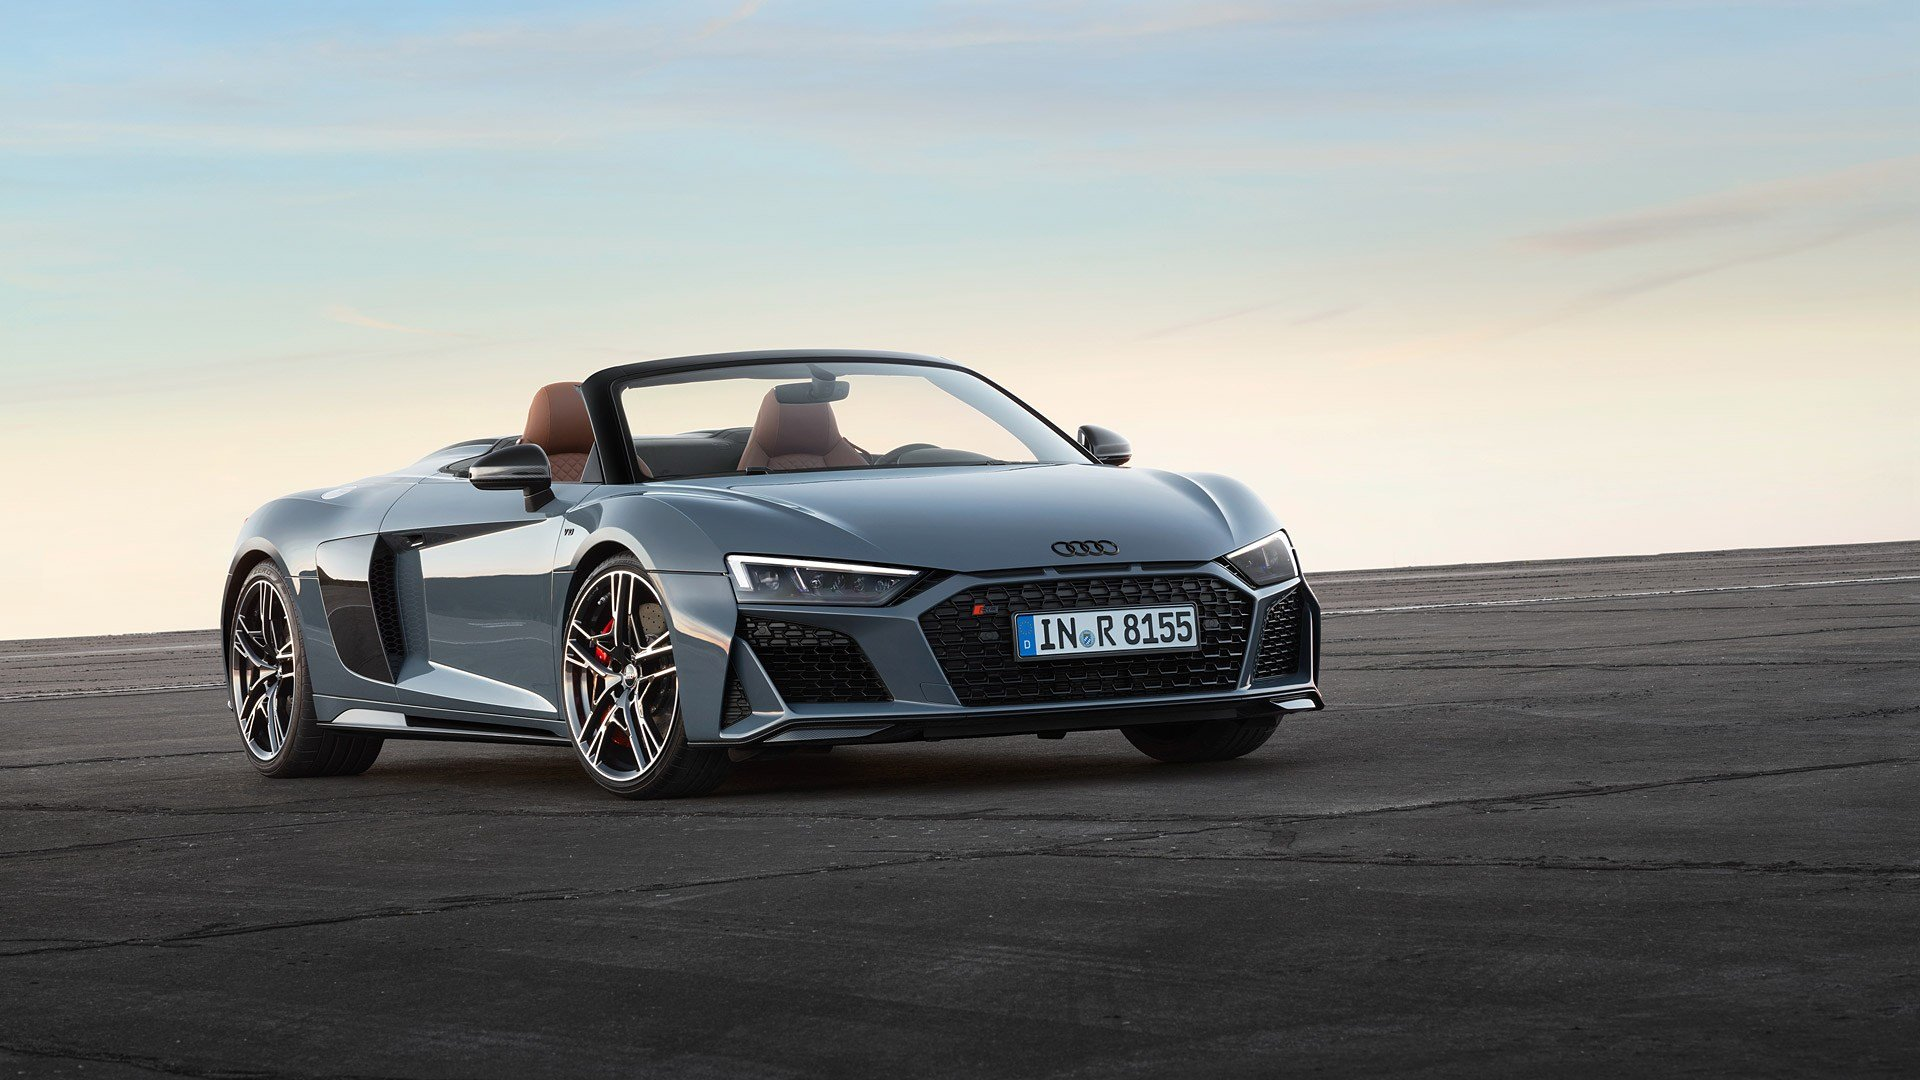 Latest 2019 Audi R8 Wallpapers Hd Images Wsupercars Free Download